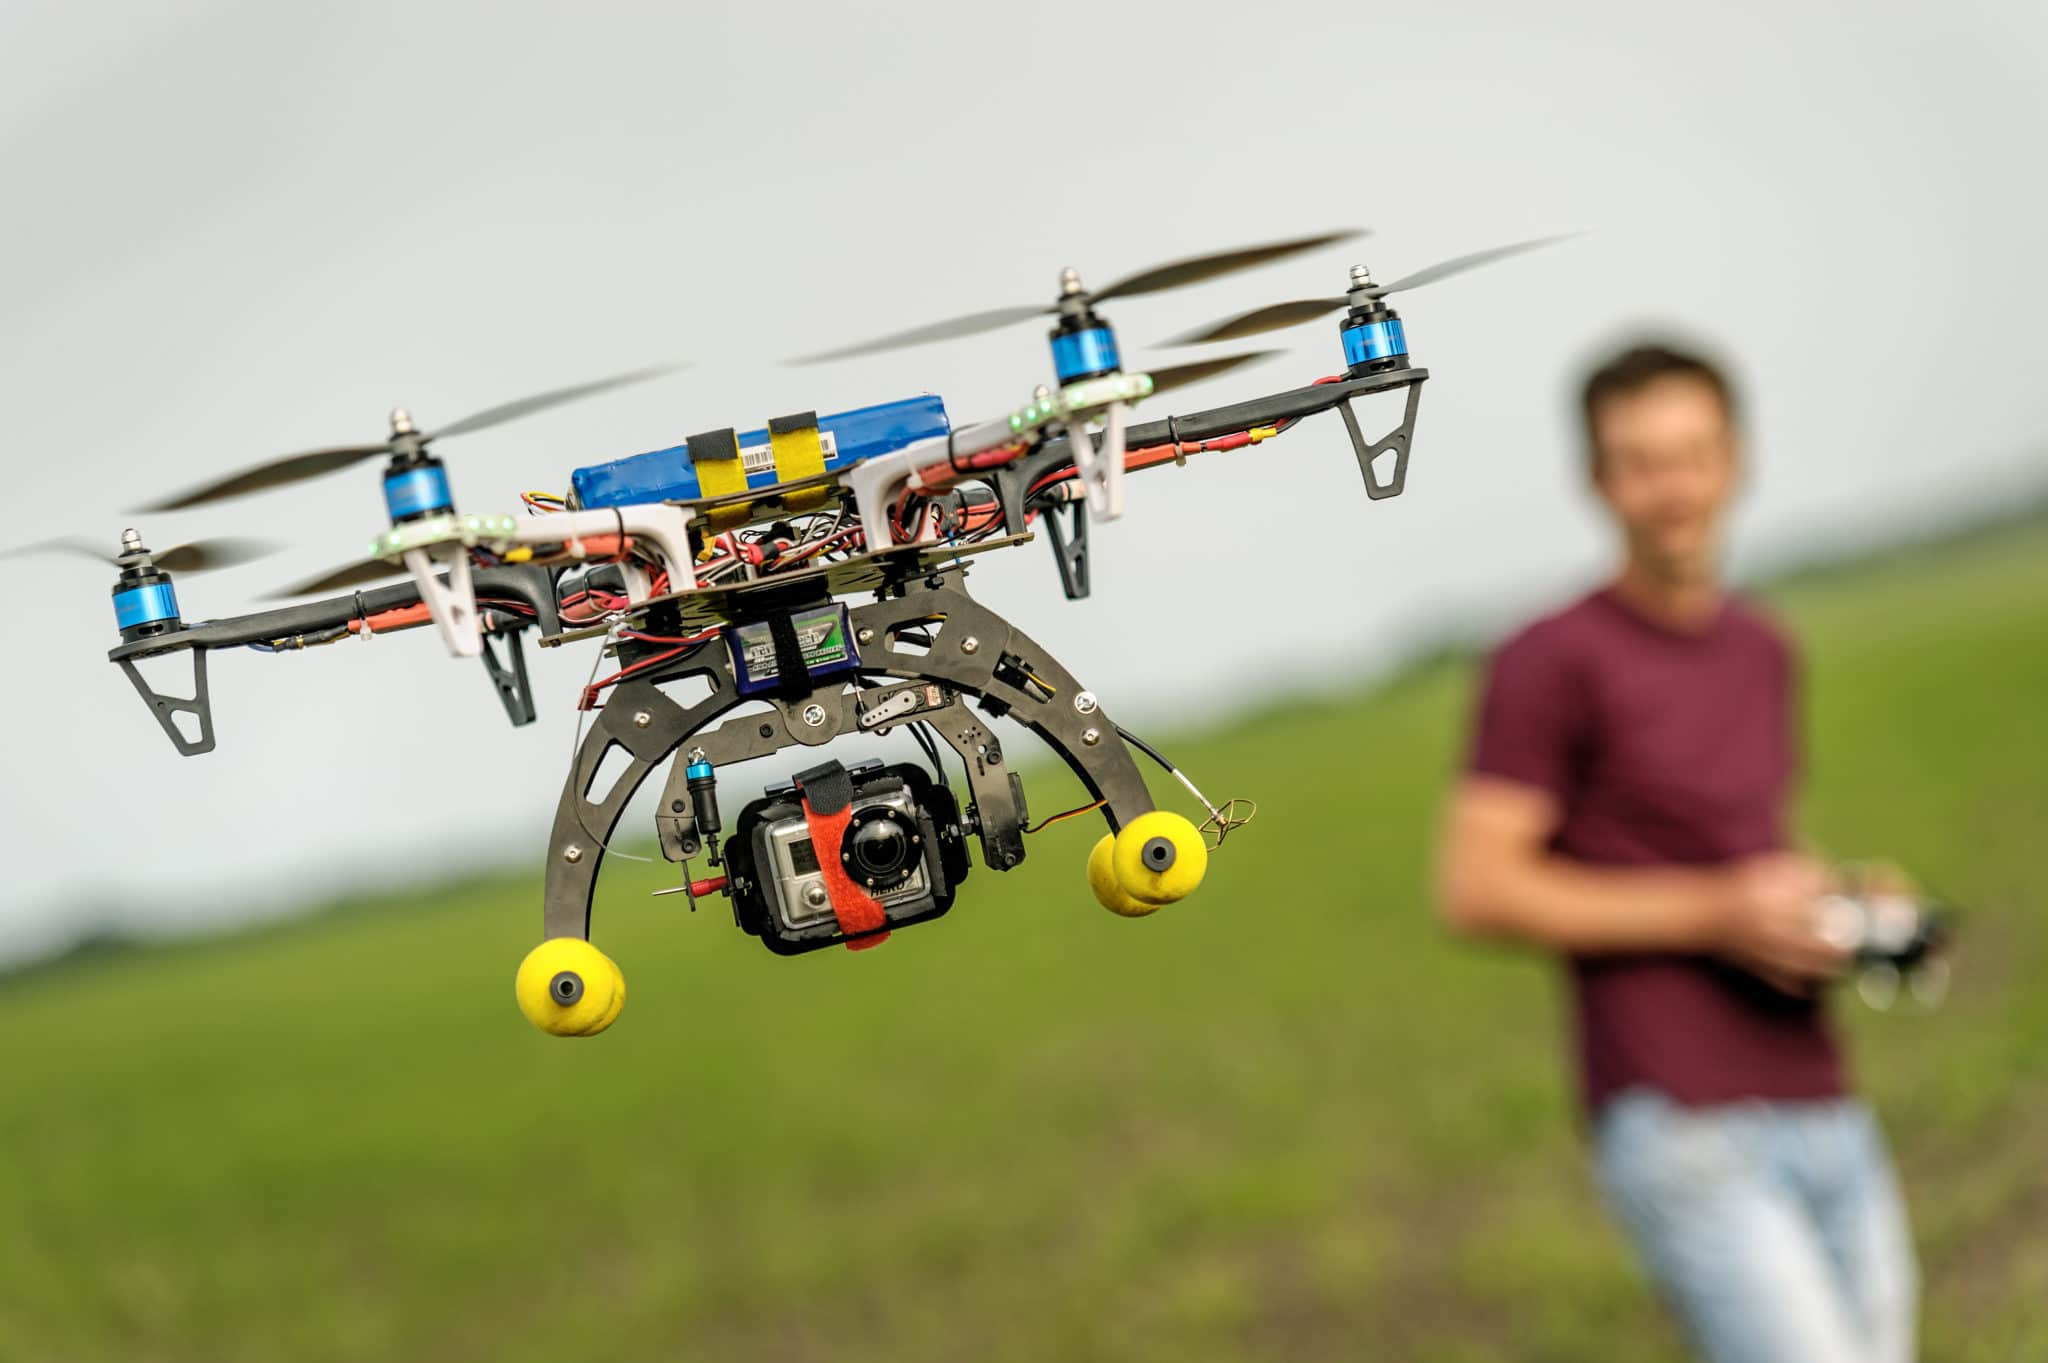 Constantly Monitor Your Drone When Flying